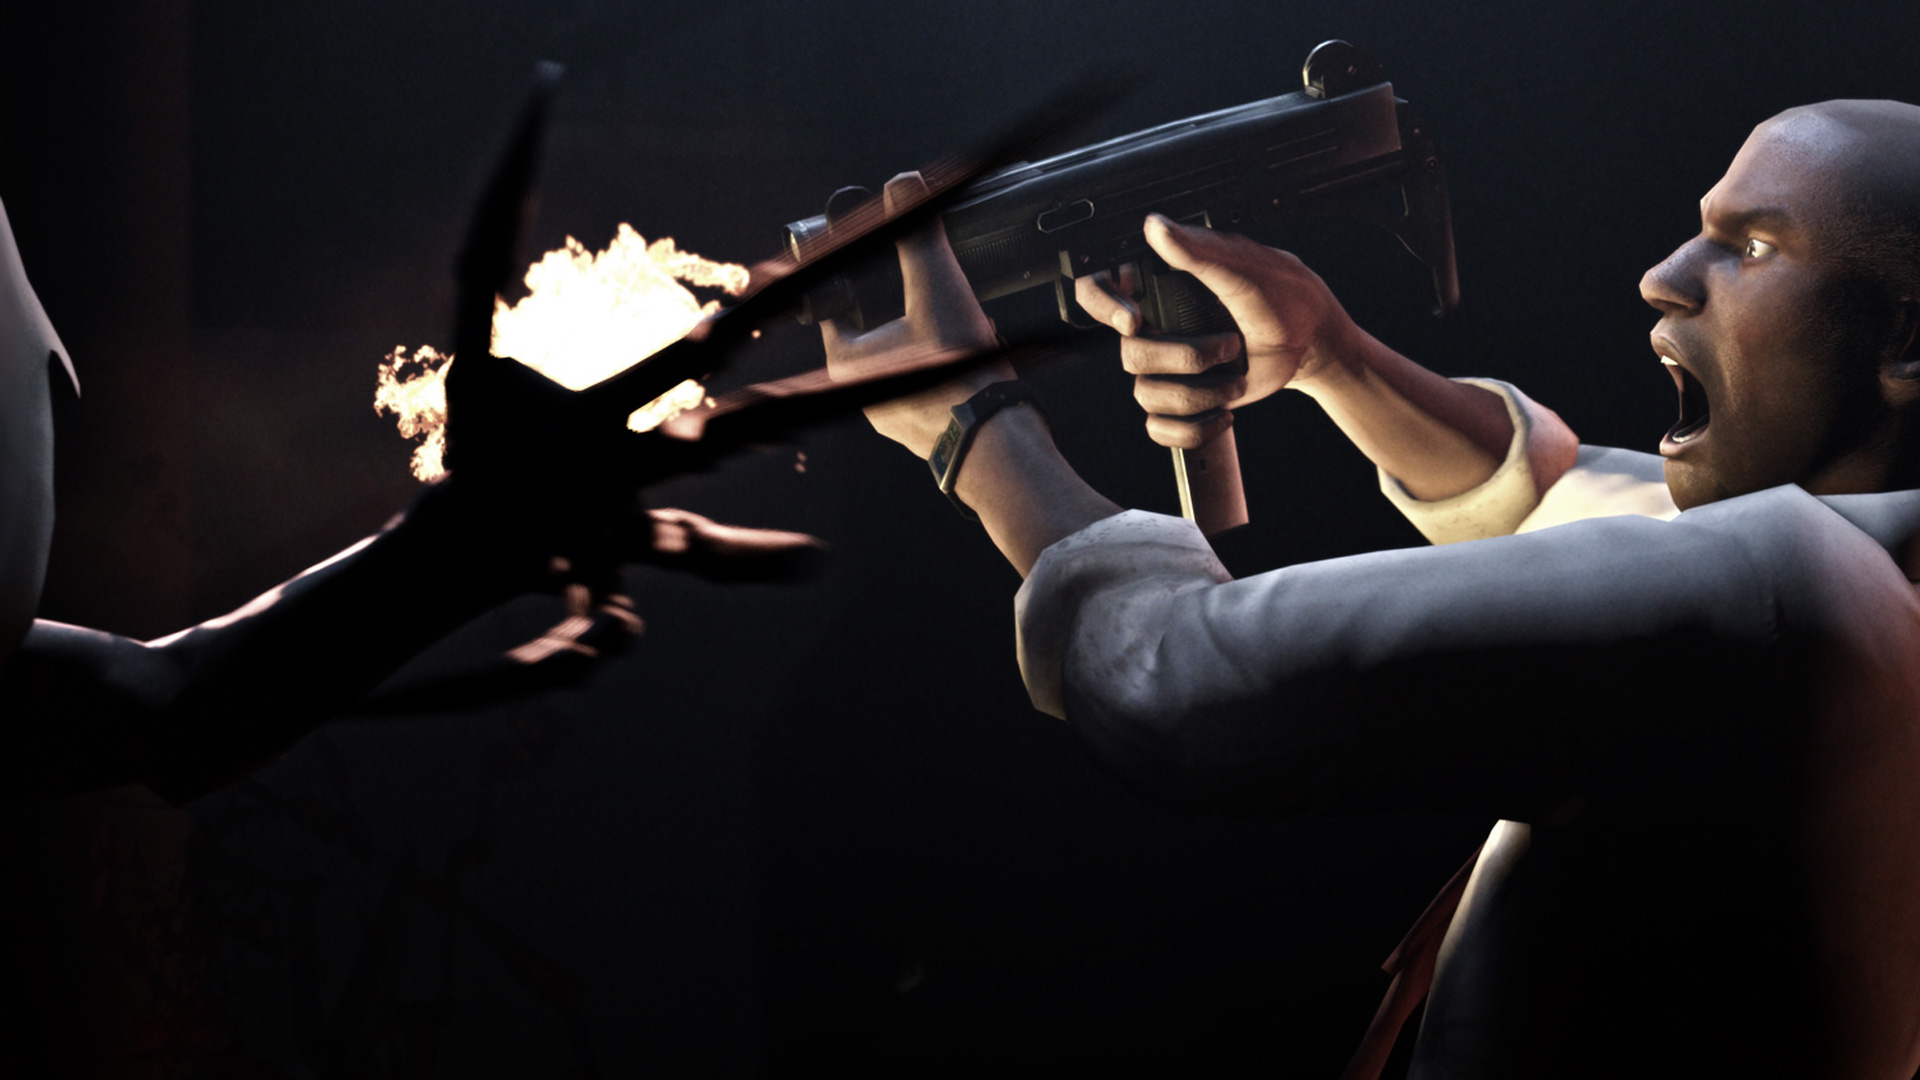 Free Left 4 Dead Wallpaper in 1920x1080